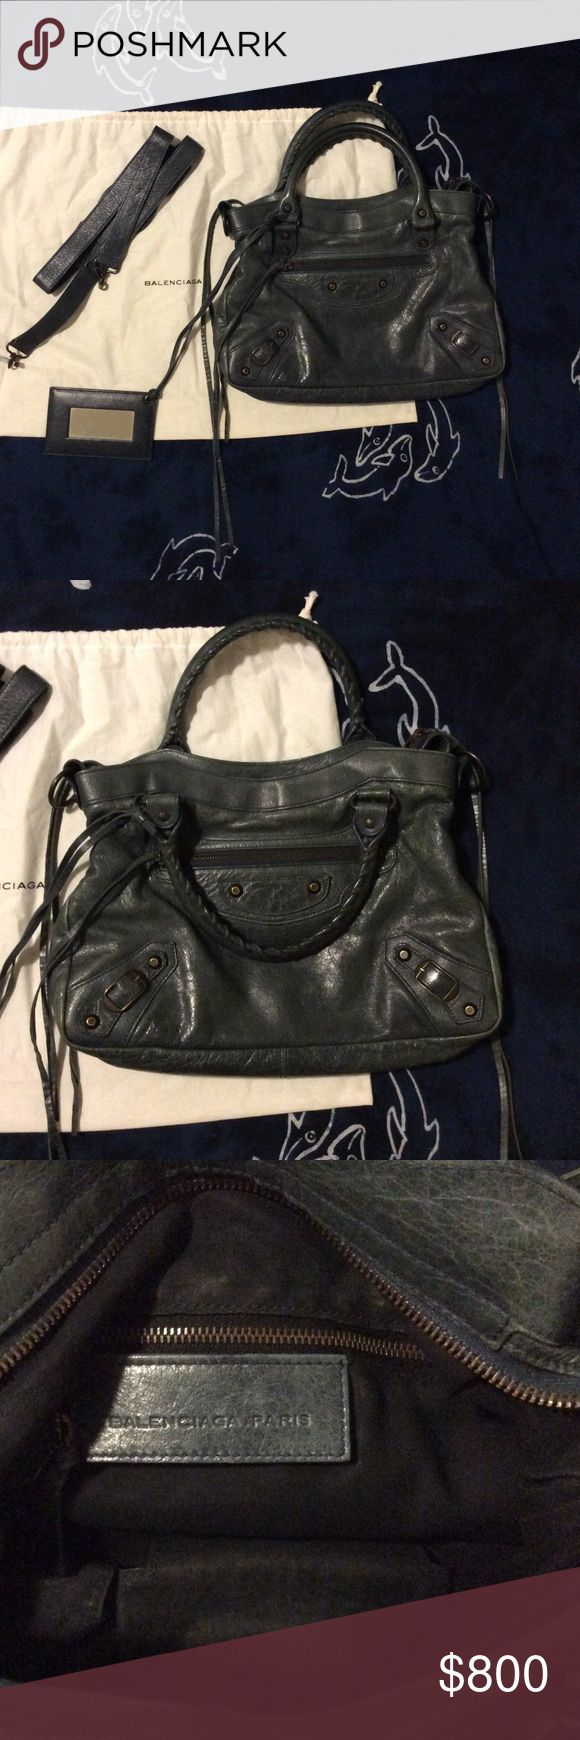 Balenciaga town bag Balenciaga town bag in anthracite with dust bag, mirror, and strap Balenciaga Bags